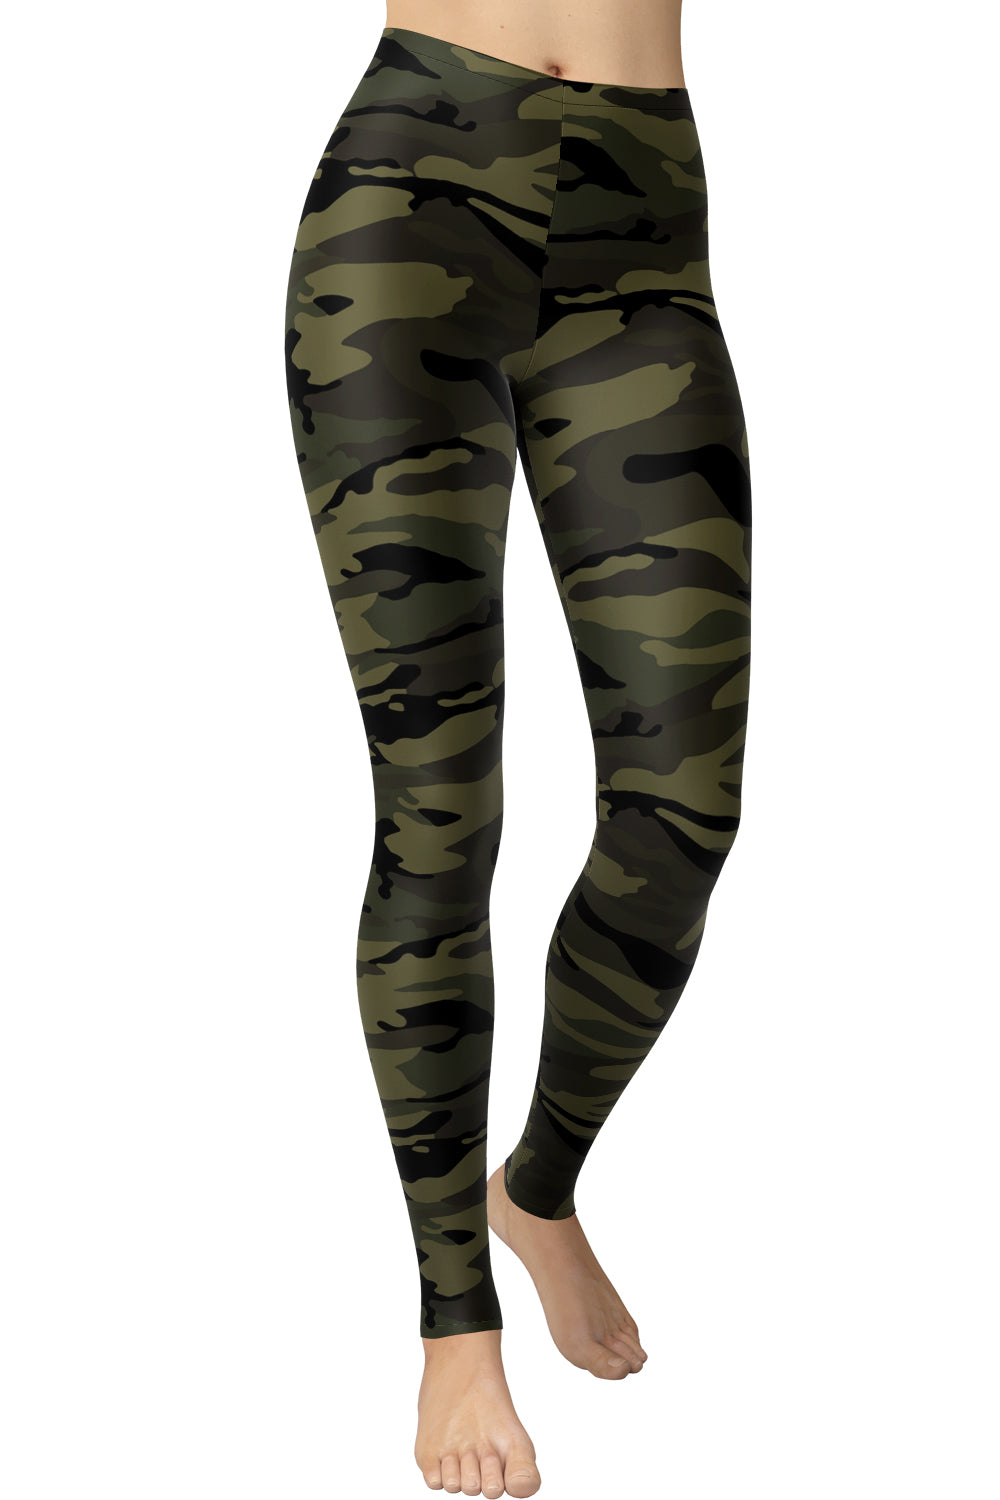 Printed Brushed Leggings - Green Army Camouflage